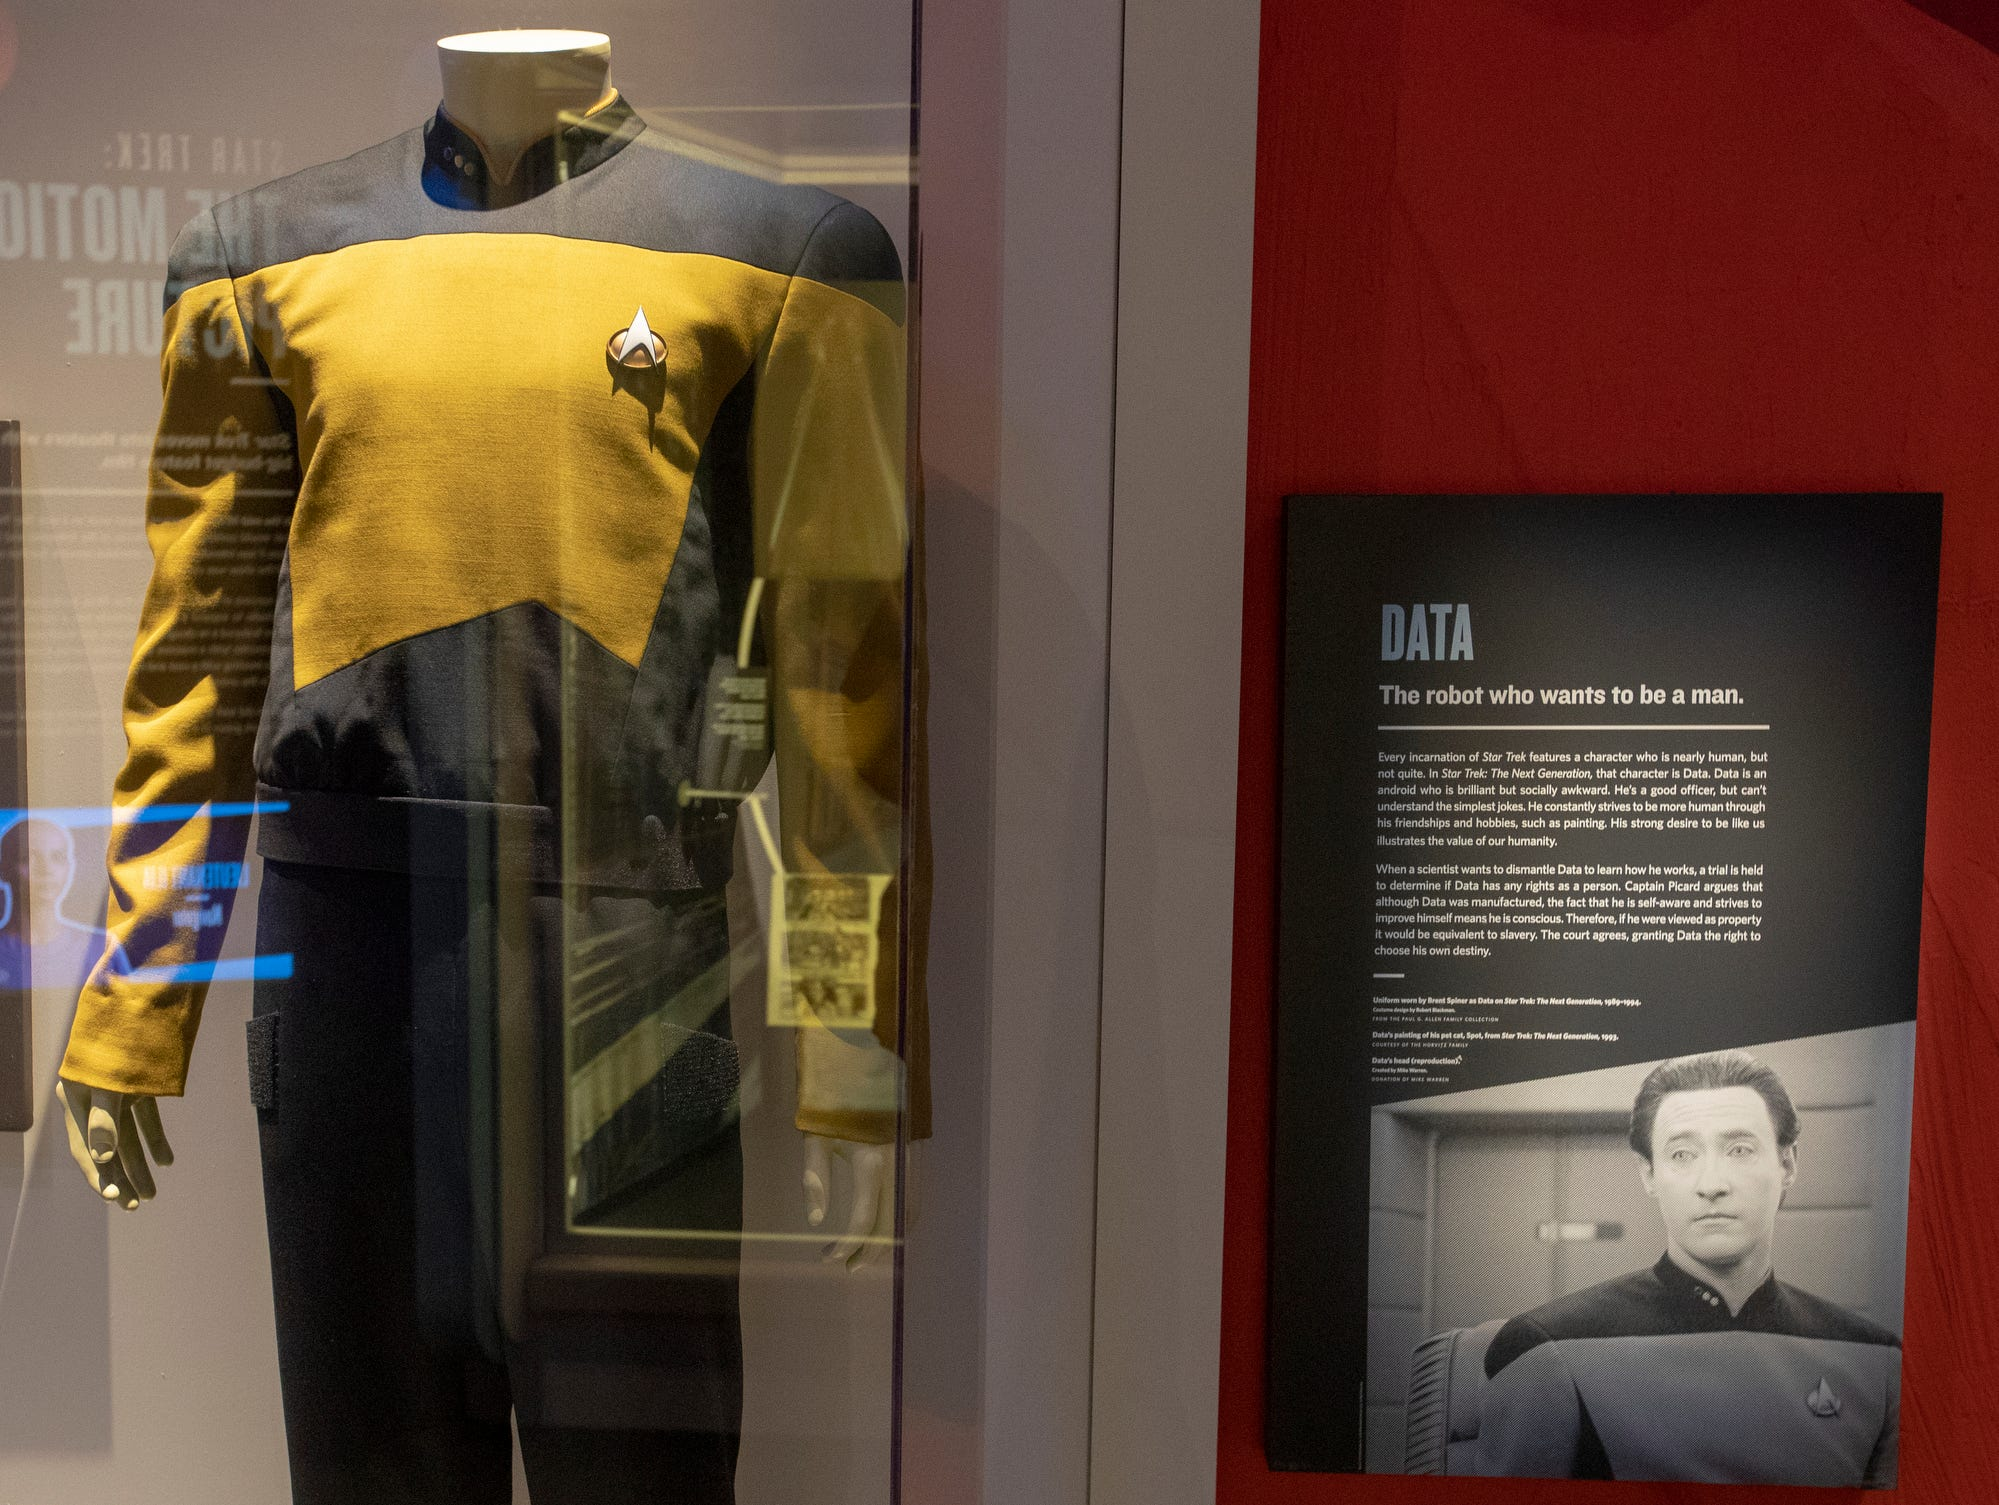 """A uniform worn by the character Data, a character in """"Star Trek: The Next Generation,"""" is seen at The Children's Museum of Indianapolis, Wednesday, Jan. 23, 2019. The """"Star Trek: Exploring New Worlds"""" exhibit is made up of set pieces, ship models and outfits used during various Star Trek shows and movies and is on display at the museum from Feb. 2 through April 7, 2019."""